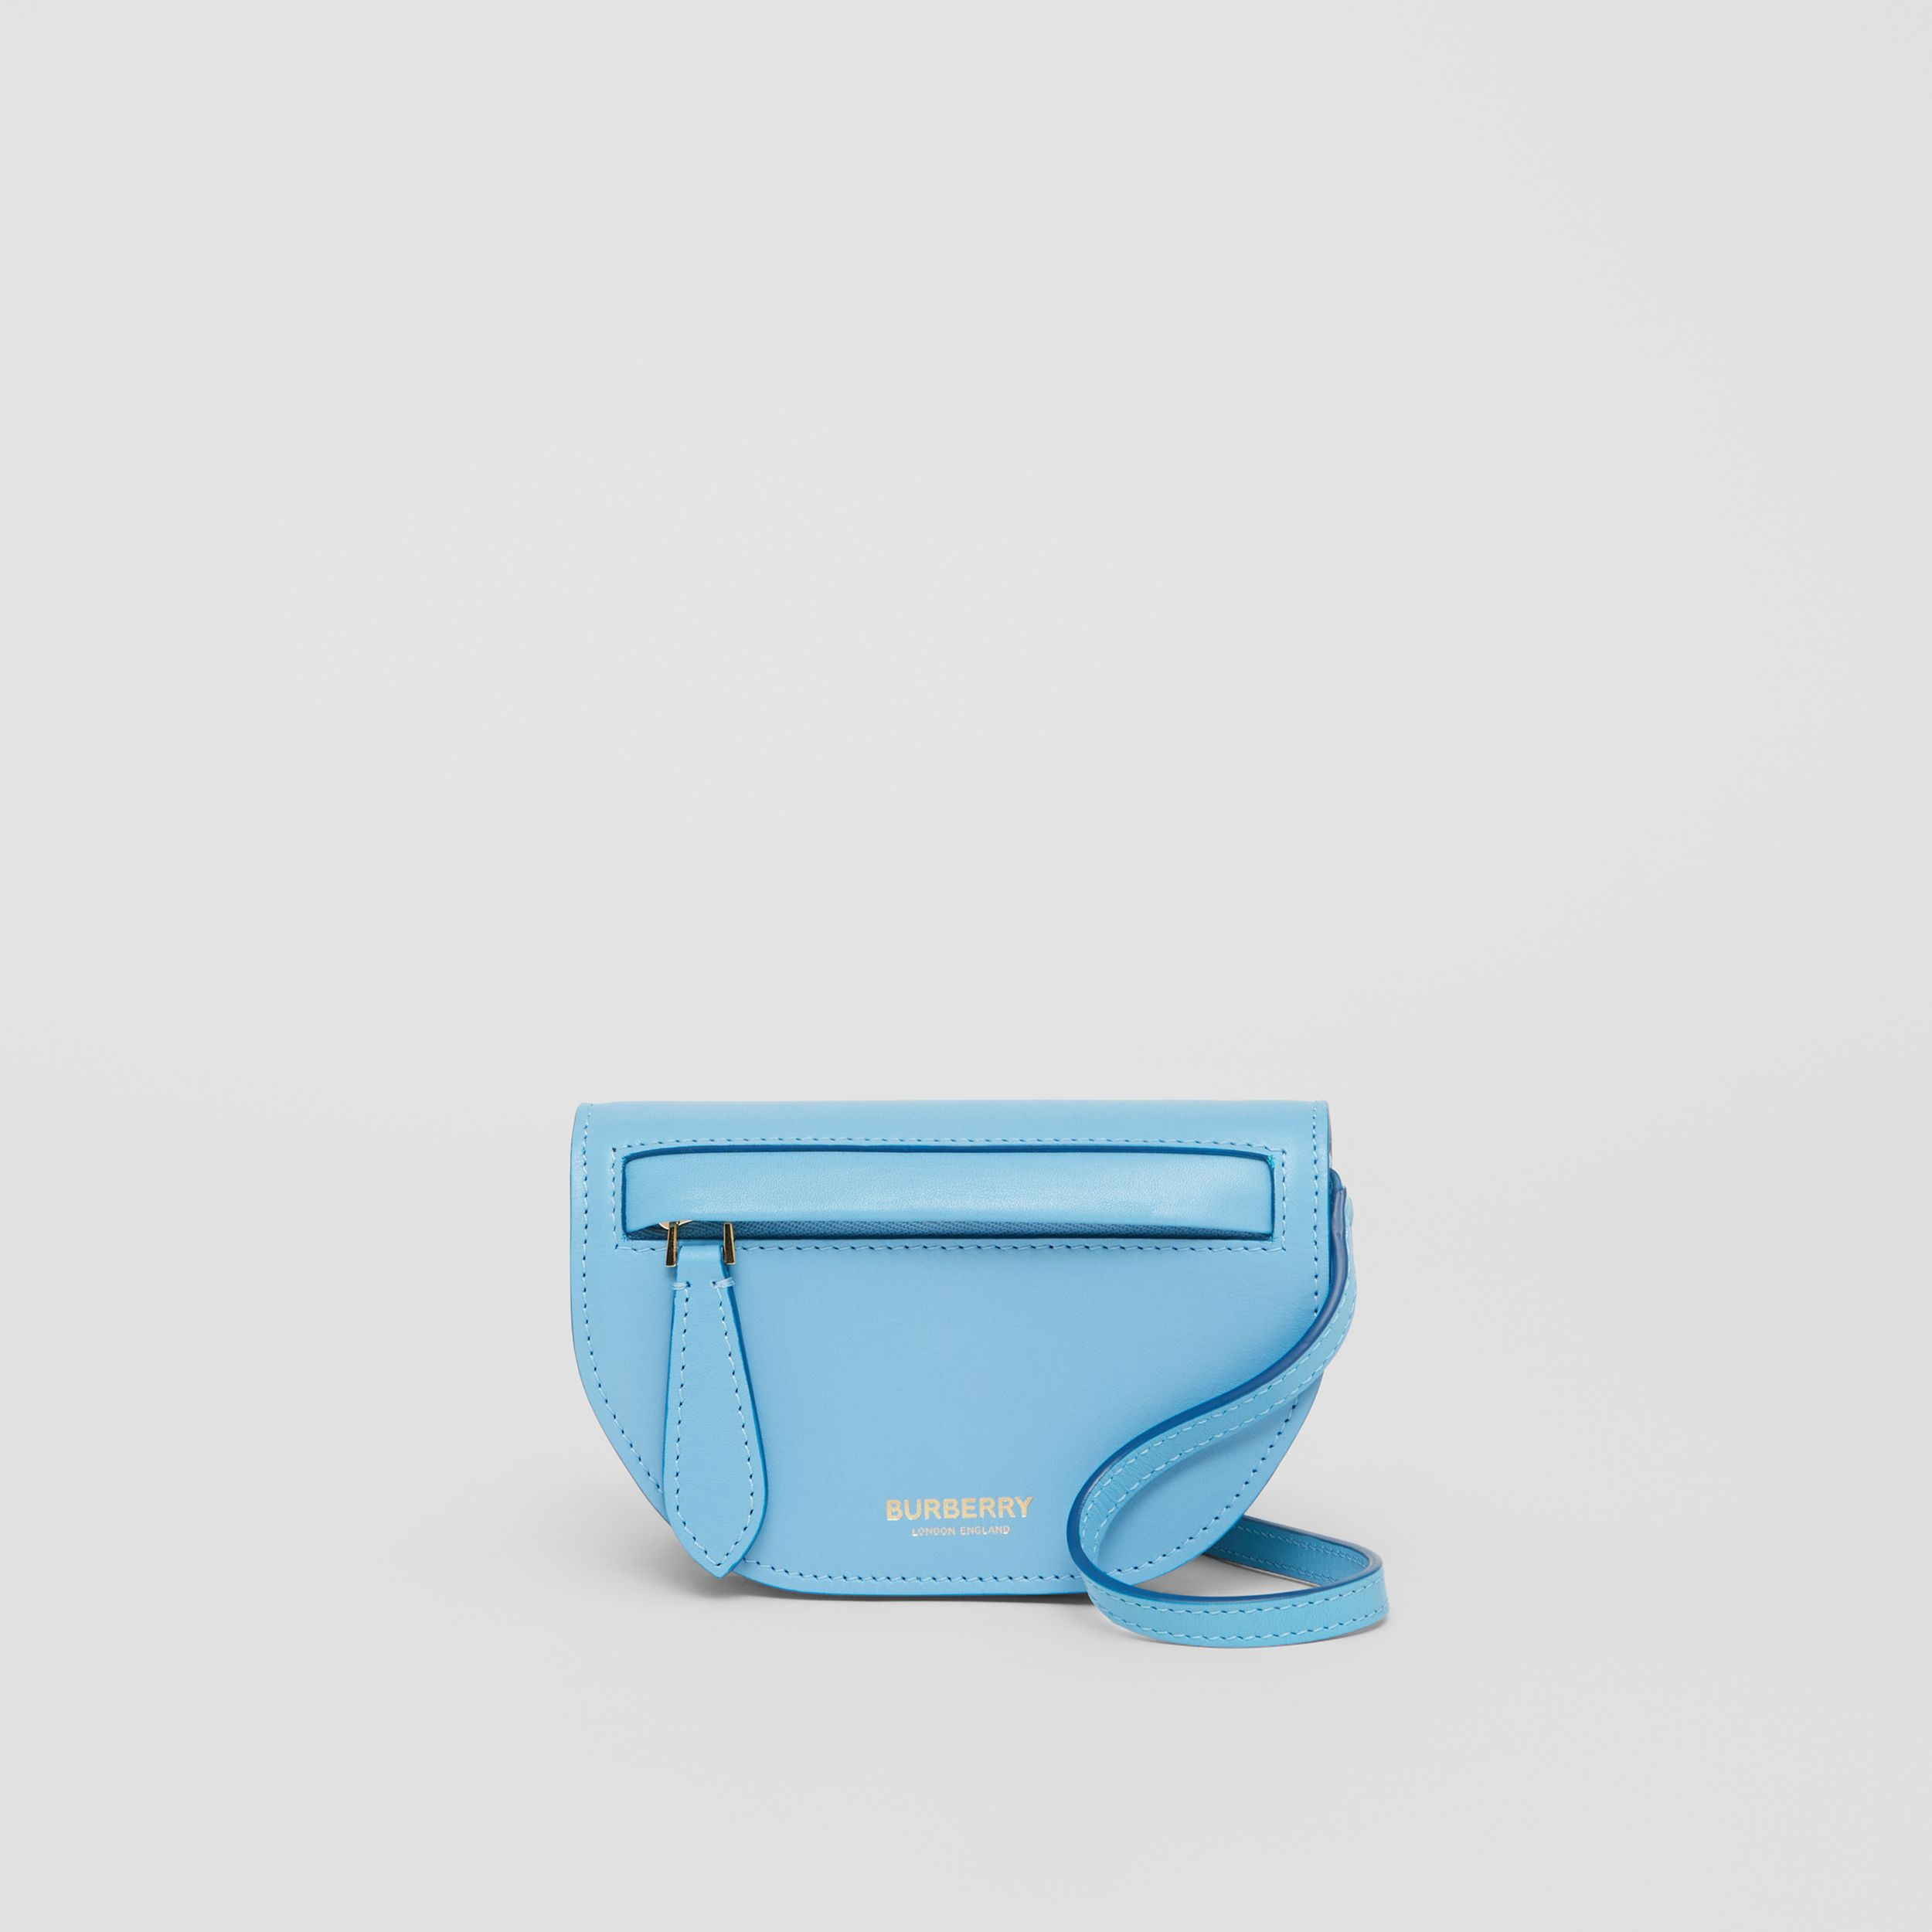 Leather Olympia Card Case with Detachable Strap in Blue Topaz | Burberry - 1